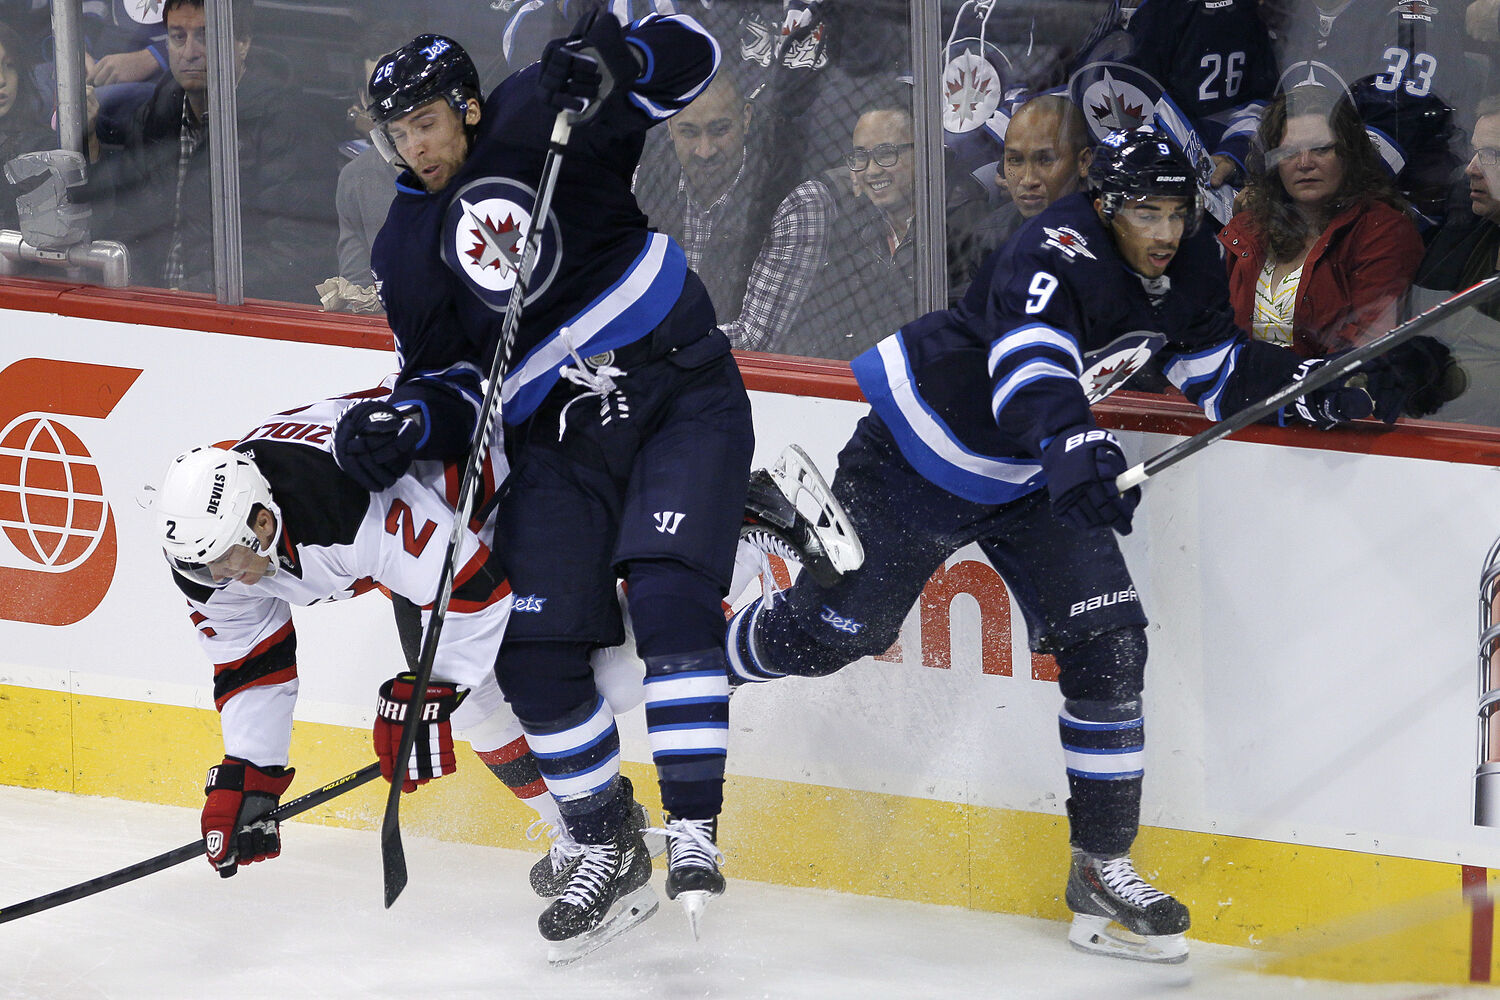 Blake Wheeler and Evander Kane collide with Marek Zidlicky during the first period.